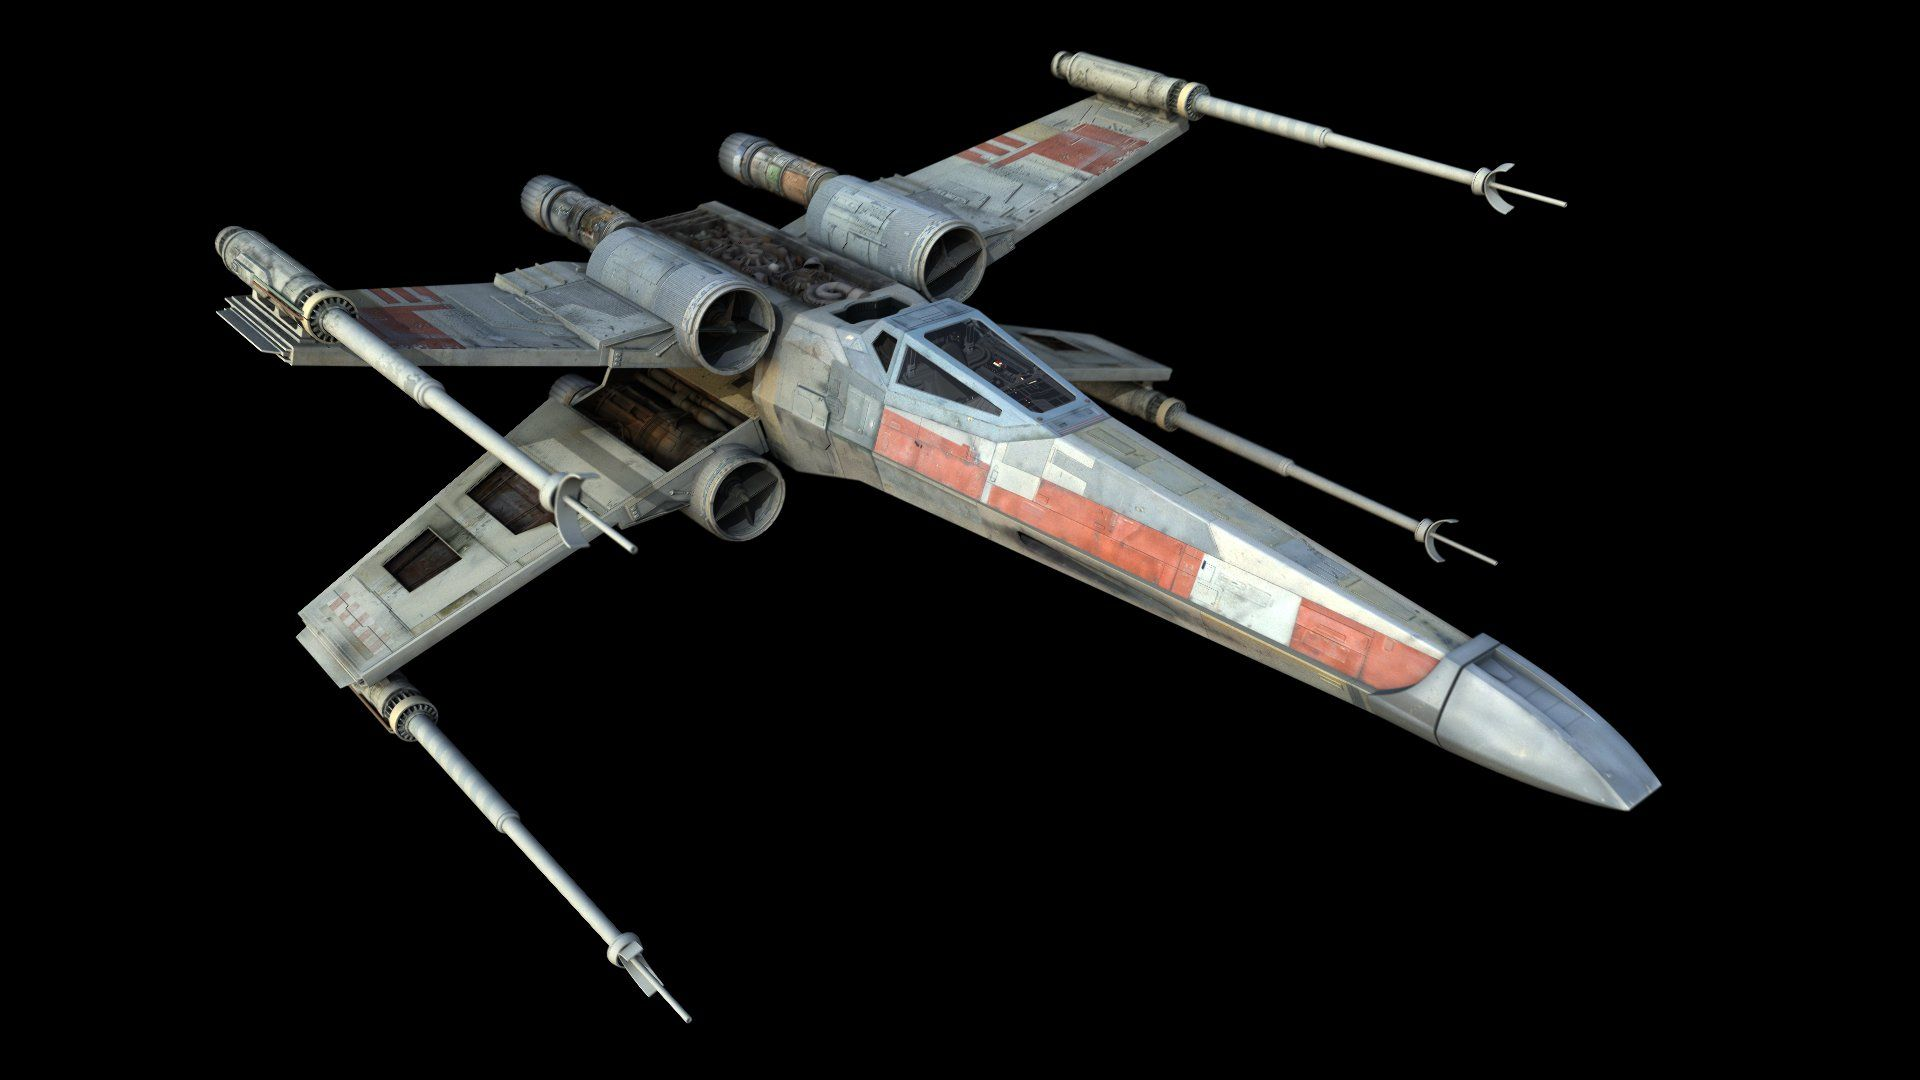 This Is Lego S Fourth Iteration Of The Star Wars X Wing Fighter Not Including Star Wars Ships Ultimate Star Wars Star Wars